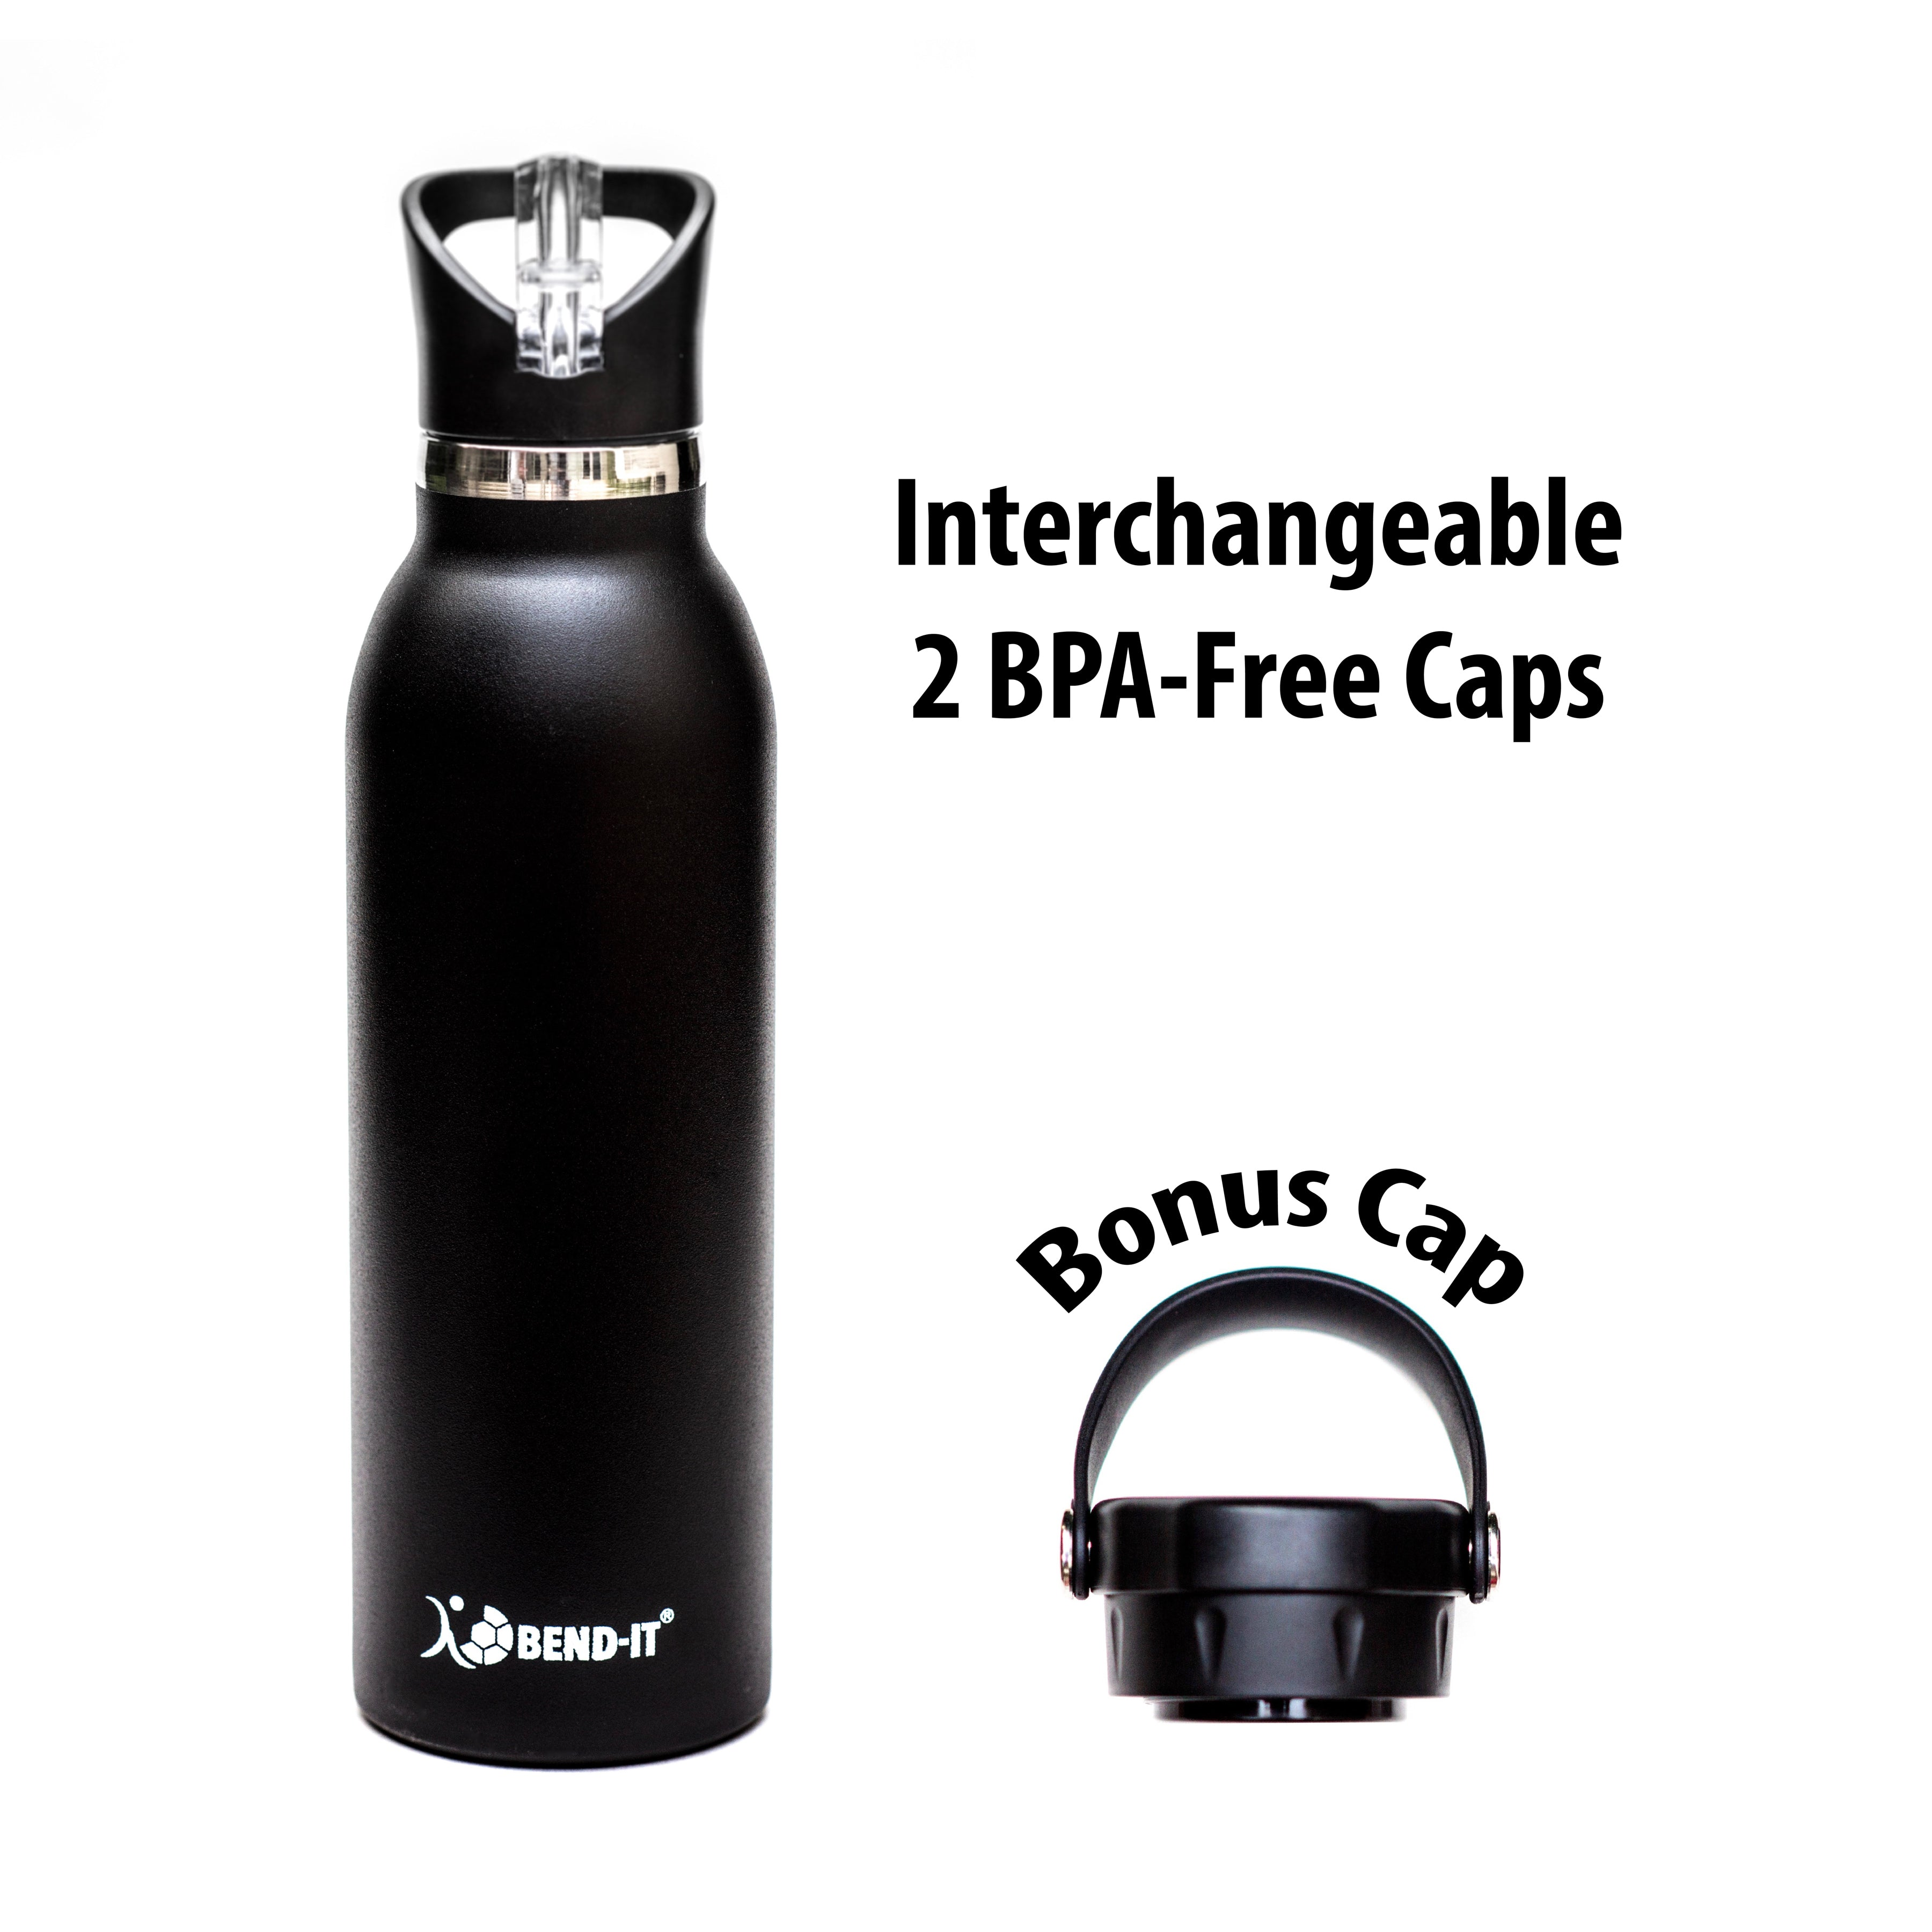 Bend-It The Coldest Water Bottle, Stainless Steel Sports